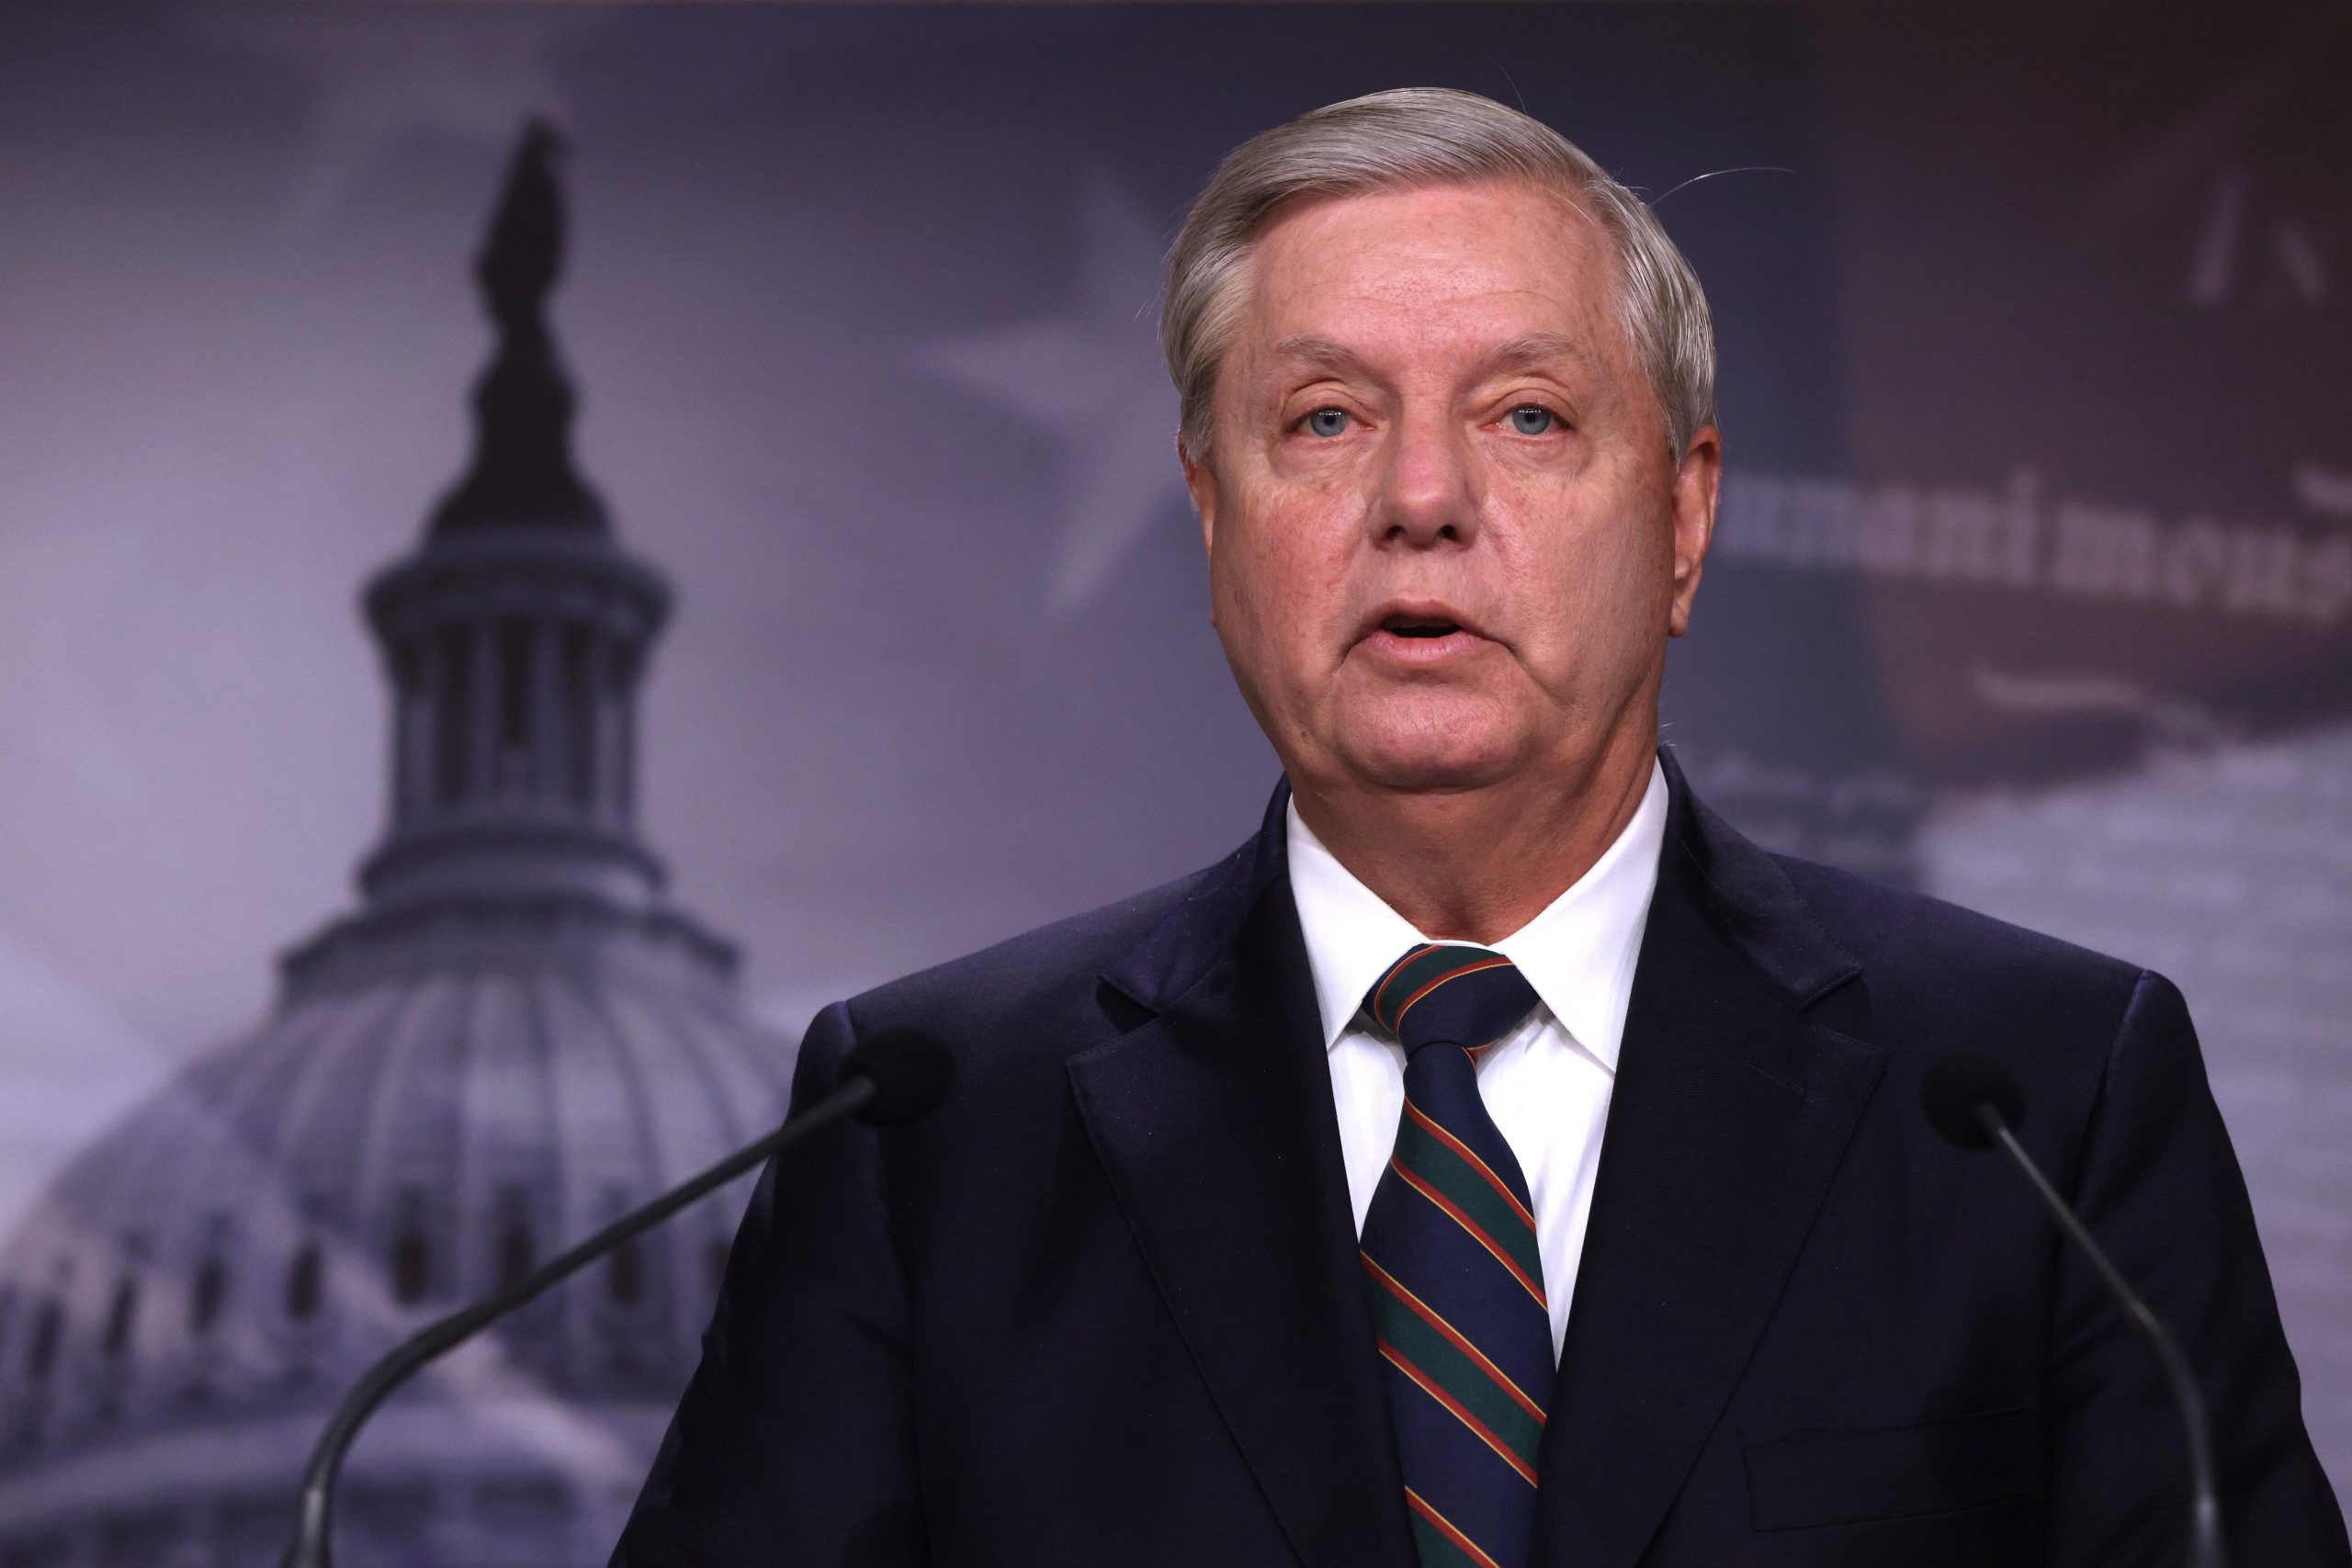 Sen. Lindsey Graham says he will 'go to war' for Chick-fil-A to be on Notre Dame's campus